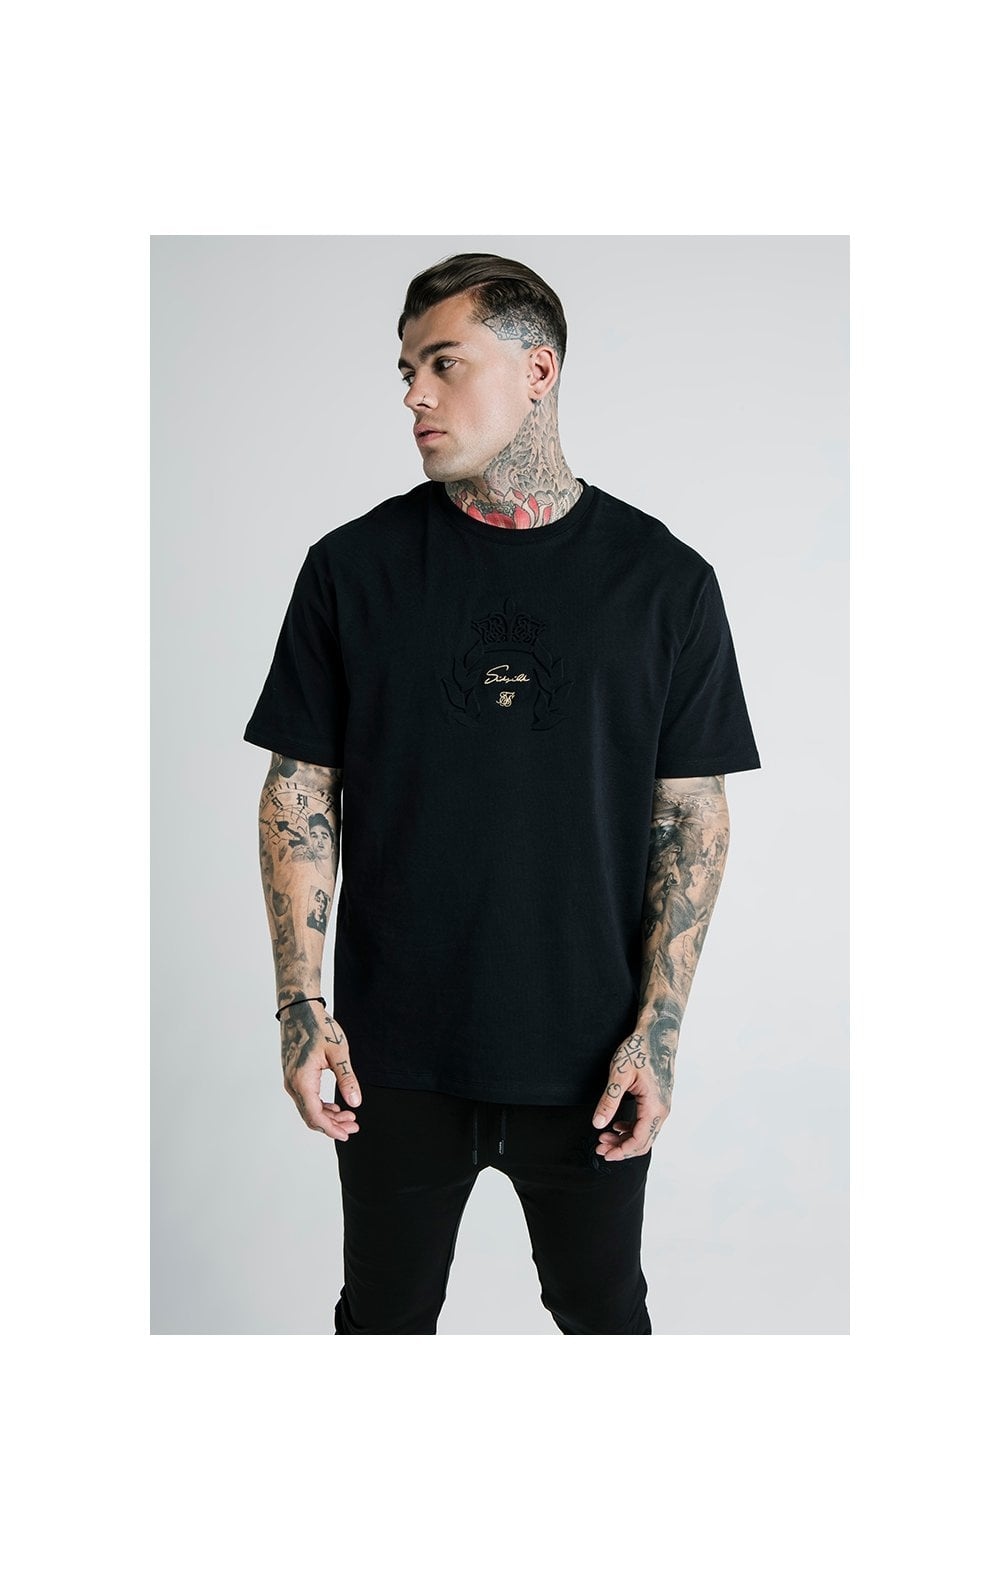 Laden Sie das Bild in den Galerie-Viewer, SikSilk X Dani Alves Luxus T-Shirt Kurzarm - Schwarz (2)